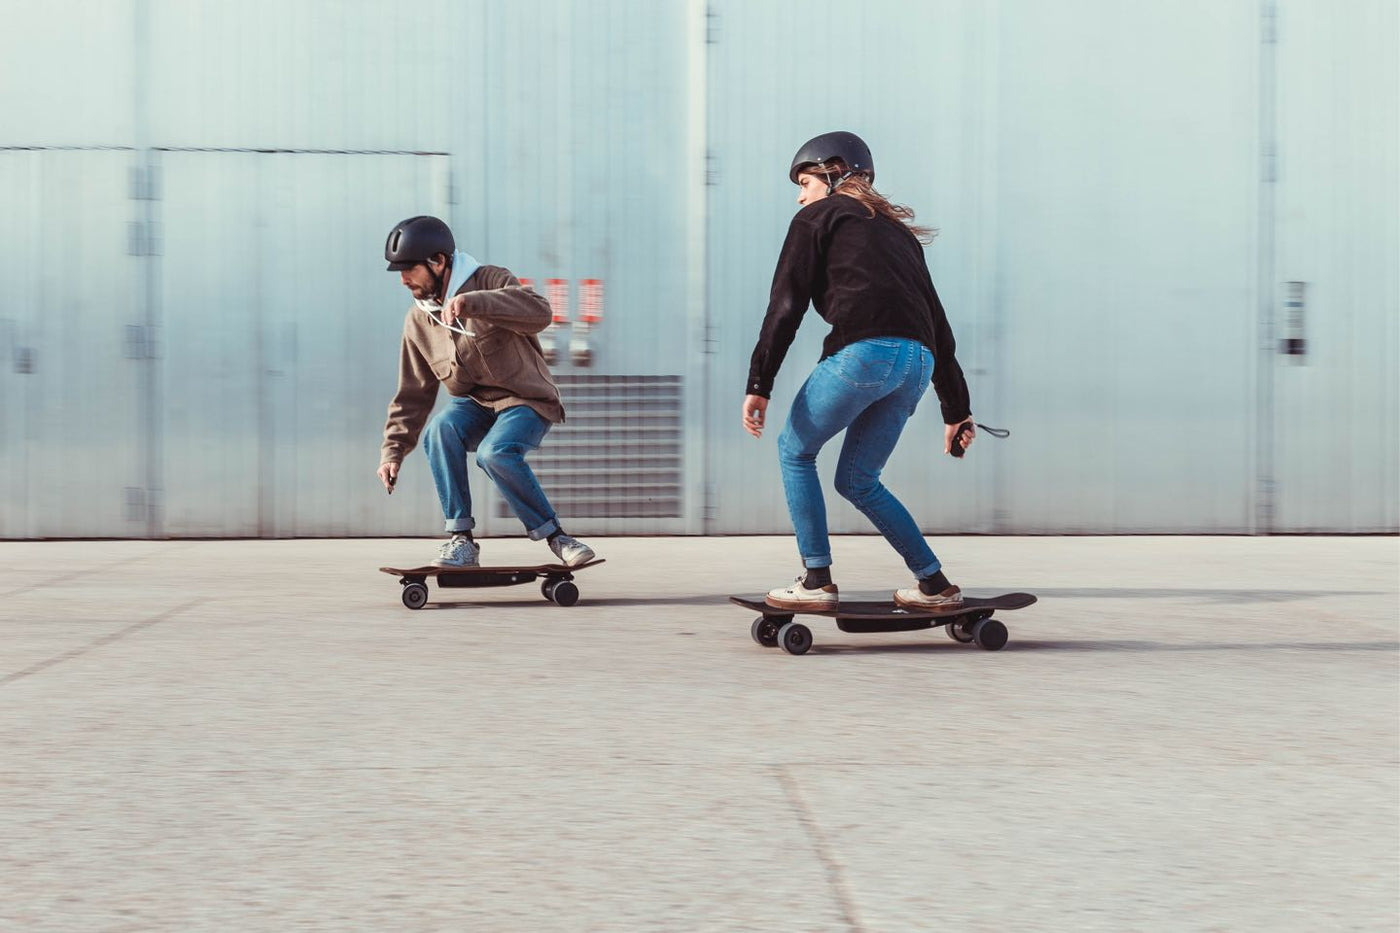 couple riding electric skateboard